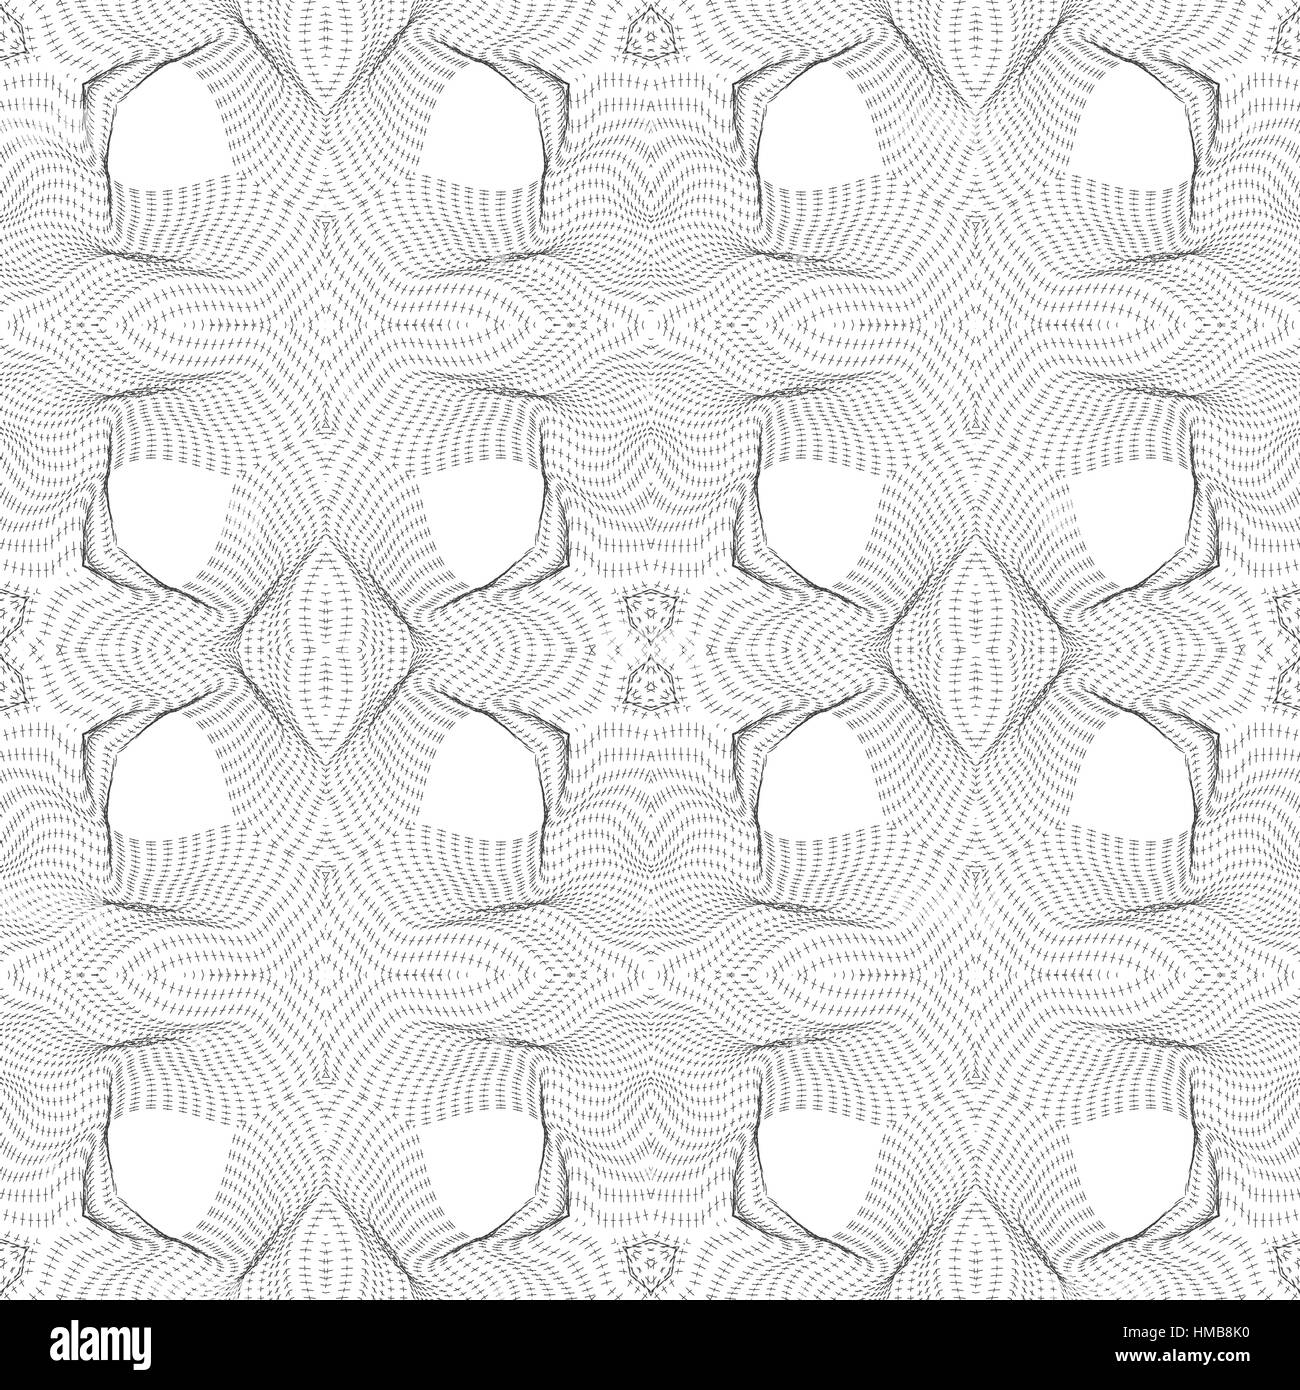 vector black glitch warped parametric shape surface waves white background decoration seamless pattern - Stock Image